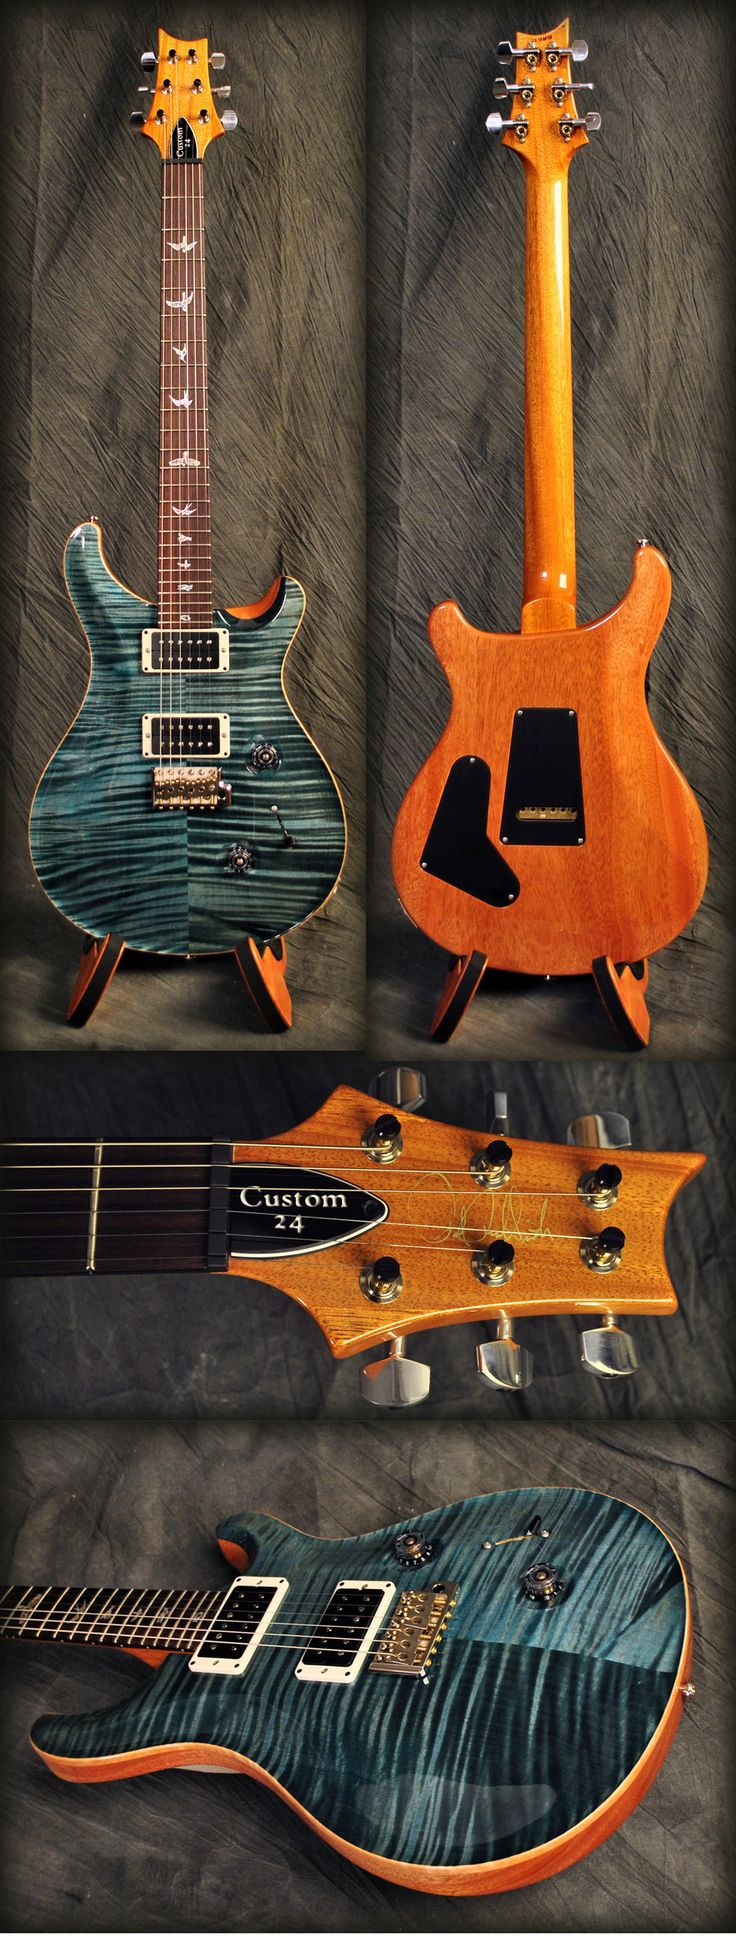 PRS Custom 24 Guitar with hand signed headstock! Get 10% off this guitar or anything else you need with Coupon Code PIN10 at MusicPower.com.